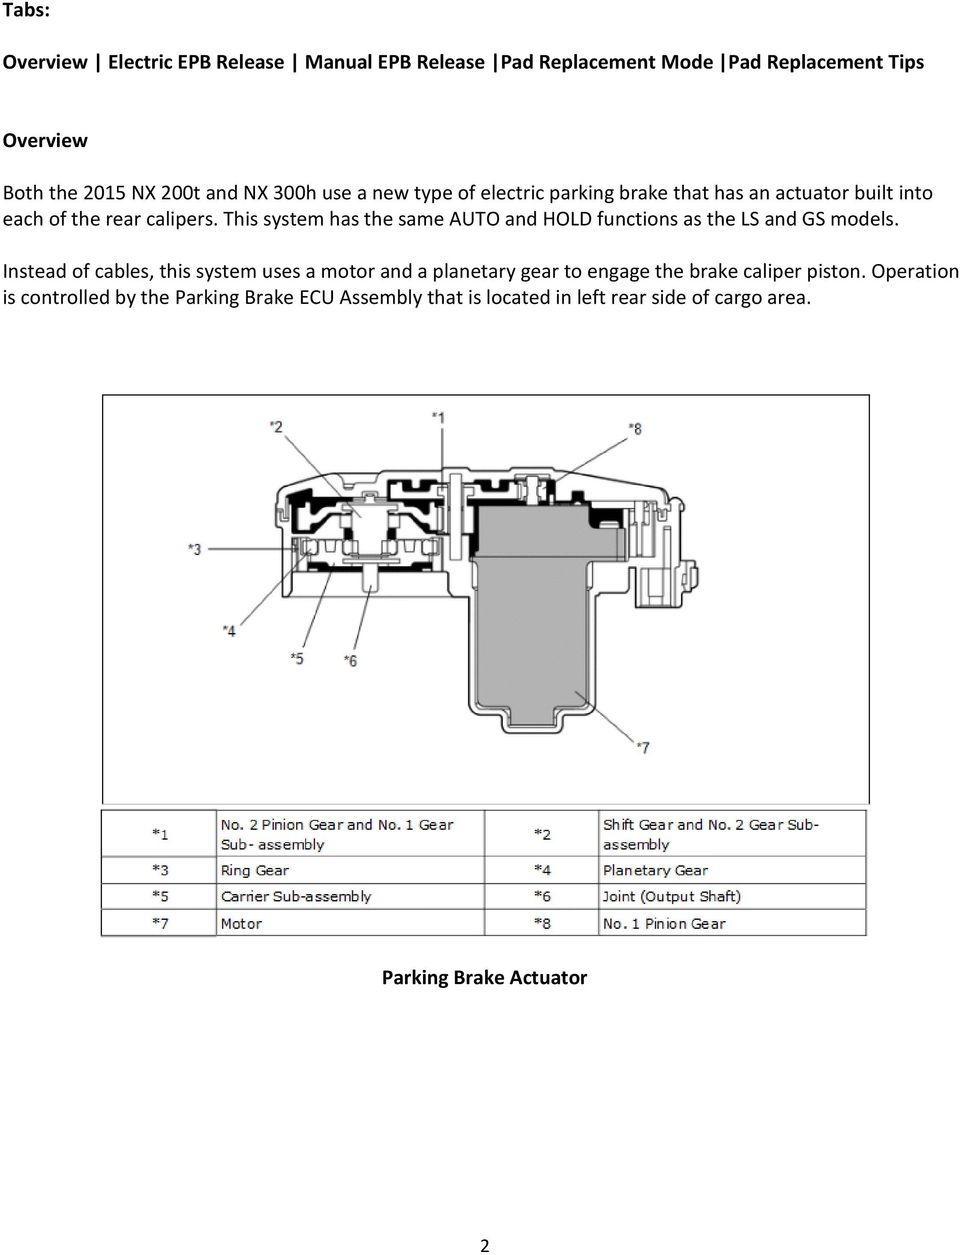 Toyota Highlander Service Manual: Parking brake control pedal ASSY